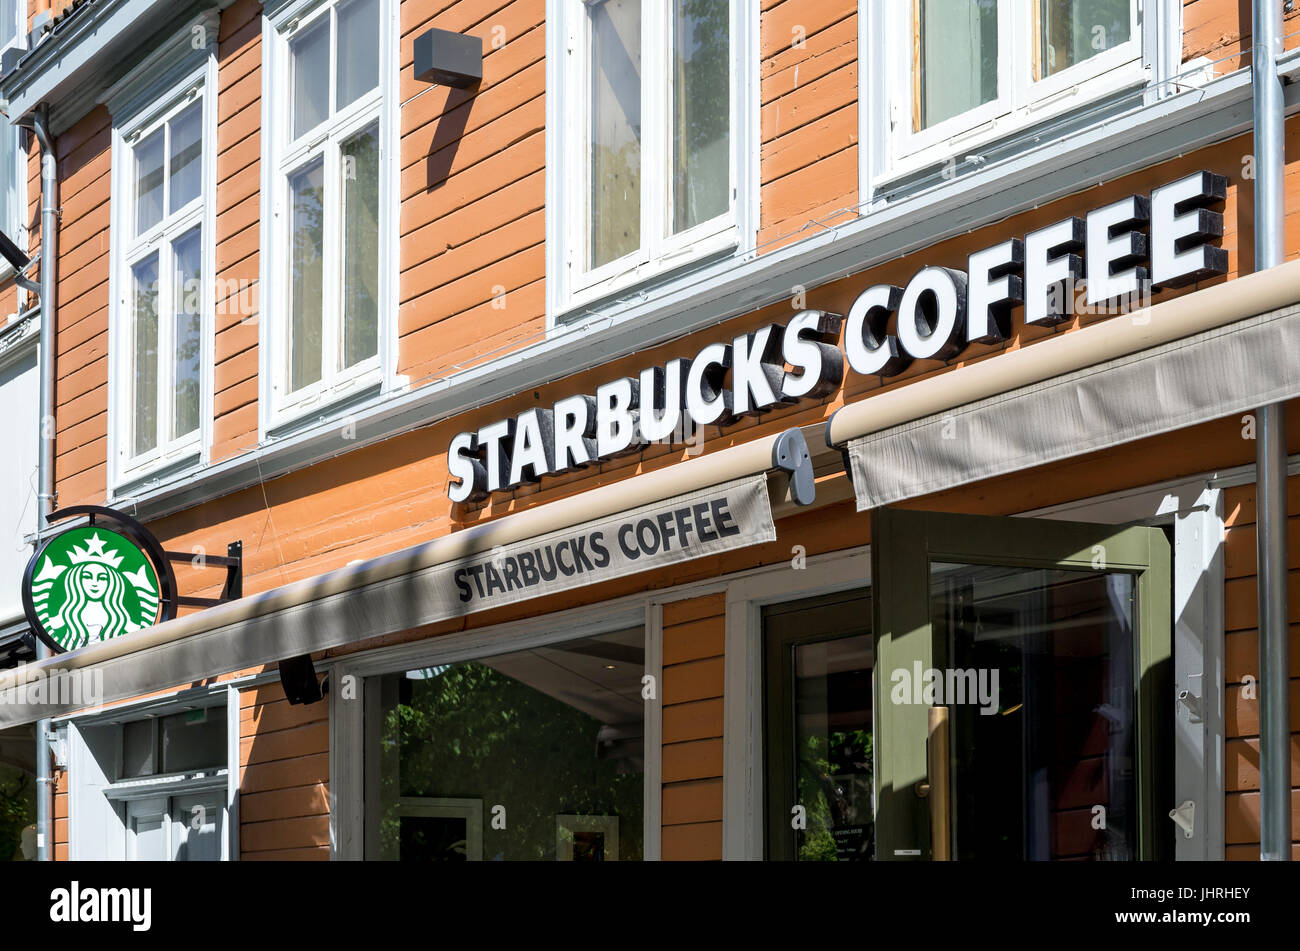 Starbucks coffeehouse in Trondheim. Starbucks Corporation is an American coffee company and coffeehouse chain, headquartered - Stock Image